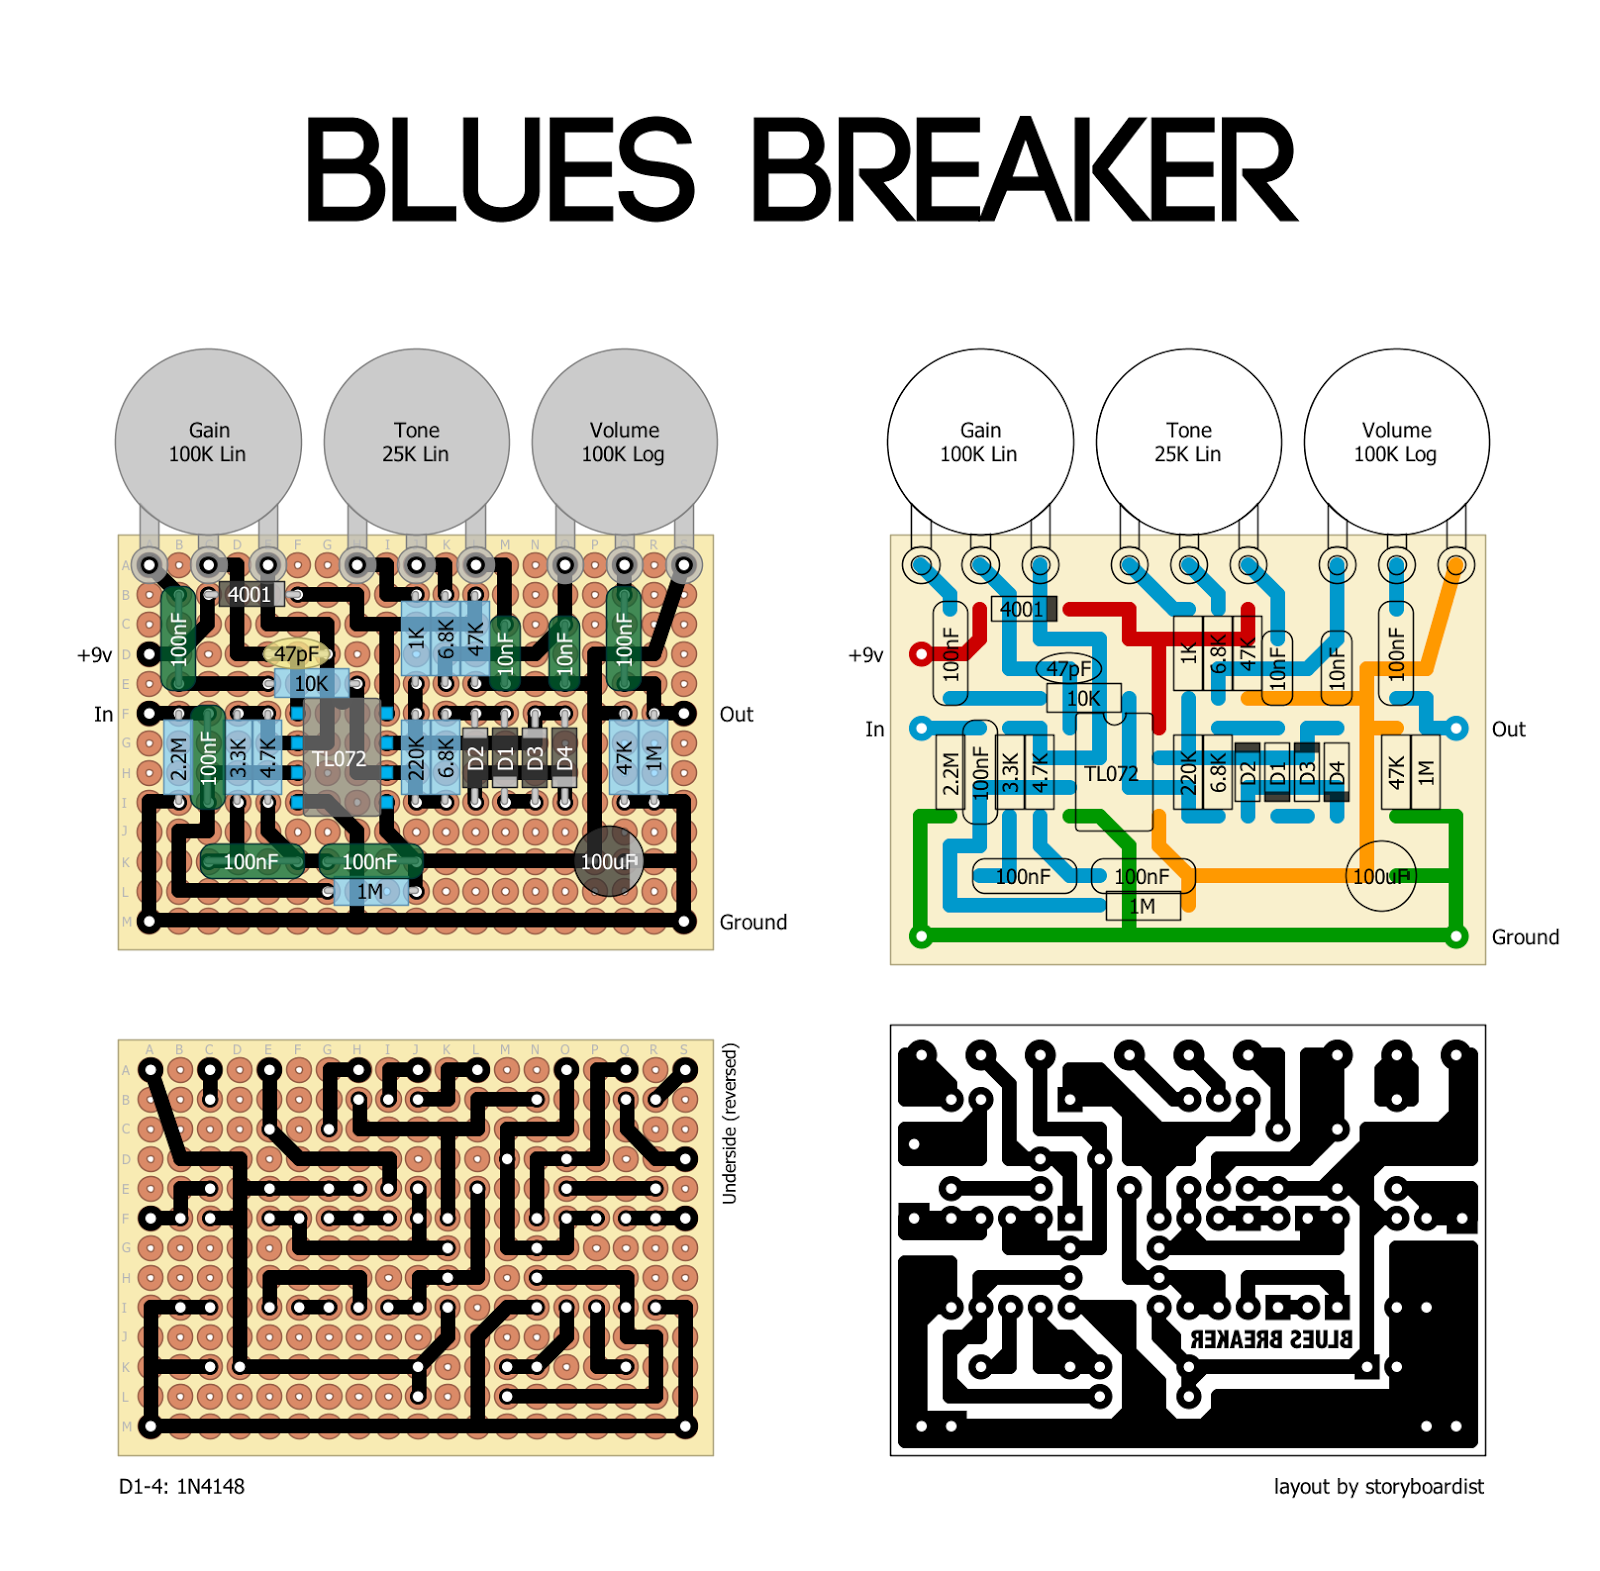 marshall bluesbreaker schematic html with Marshall Blues Breaker Mki on More Switching Info likewise Schematics also King Of Tone Overdrive Queen Of Bone as well 1 2 as well 40297 Understanding Basic Tube   Circuit Marshall Jtm 45 Reissue.